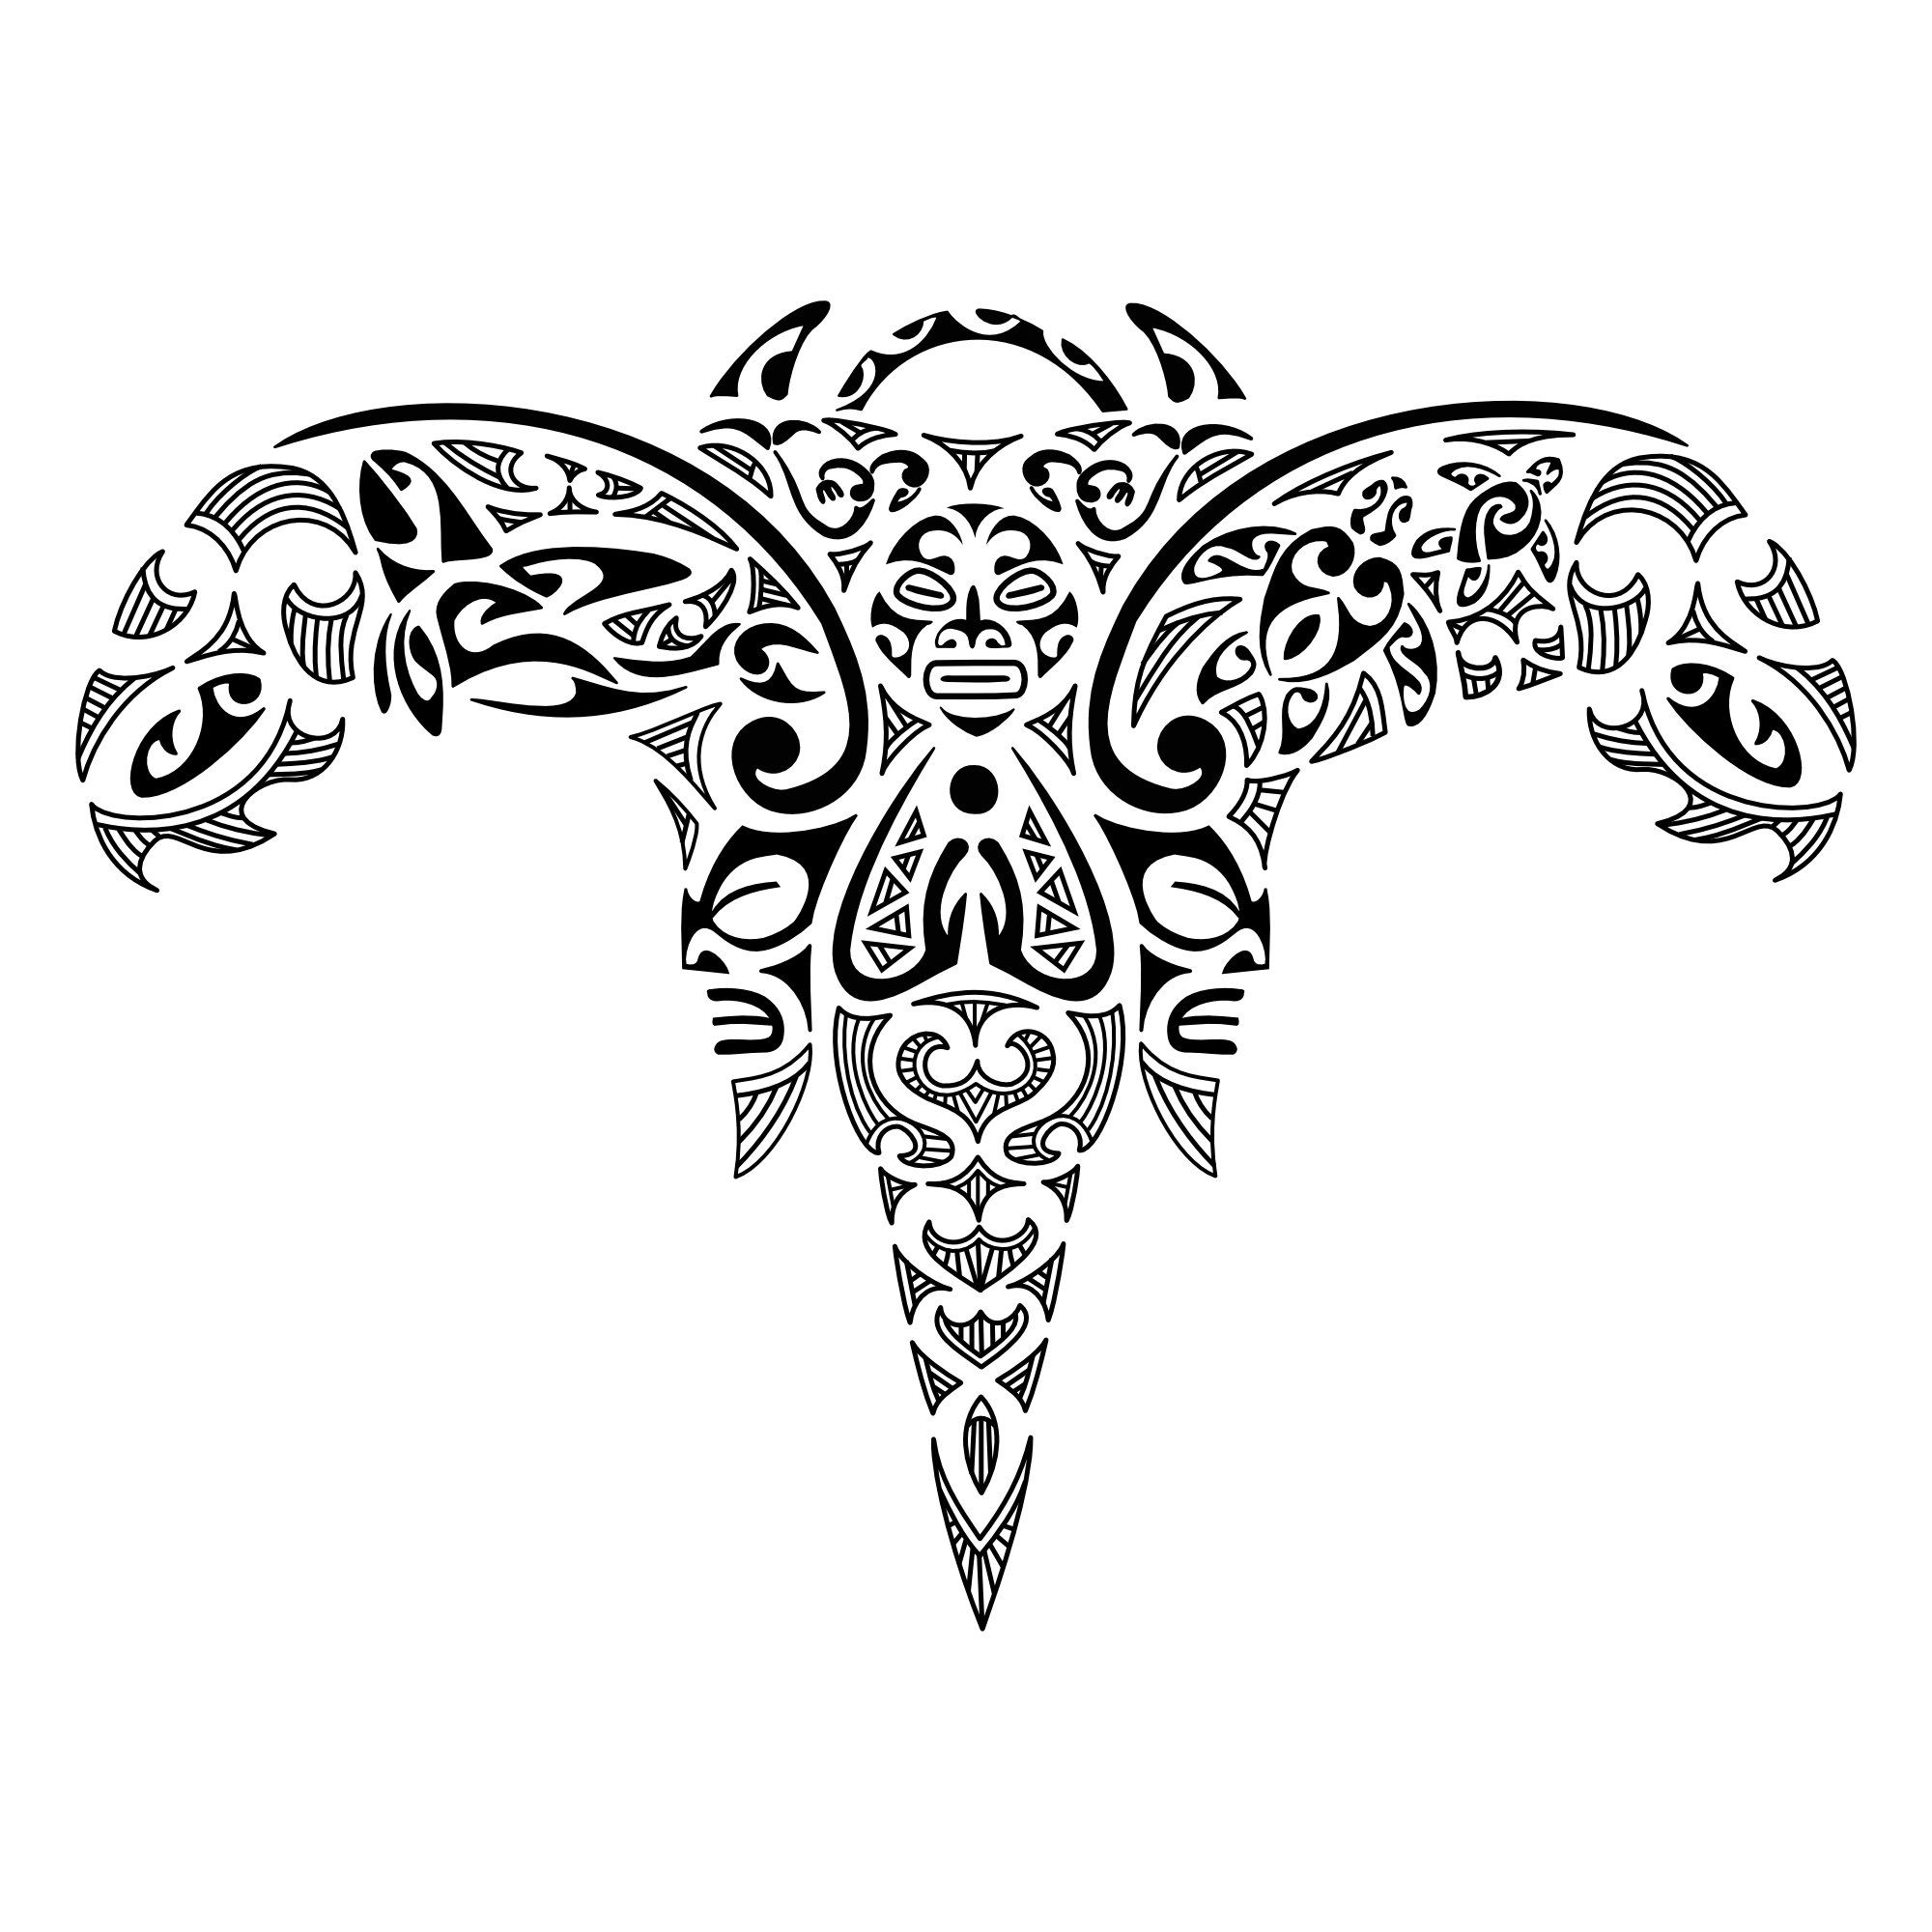 maori art maori angel piece tattoo maori. Black Bedroom Furniture Sets. Home Design Ideas